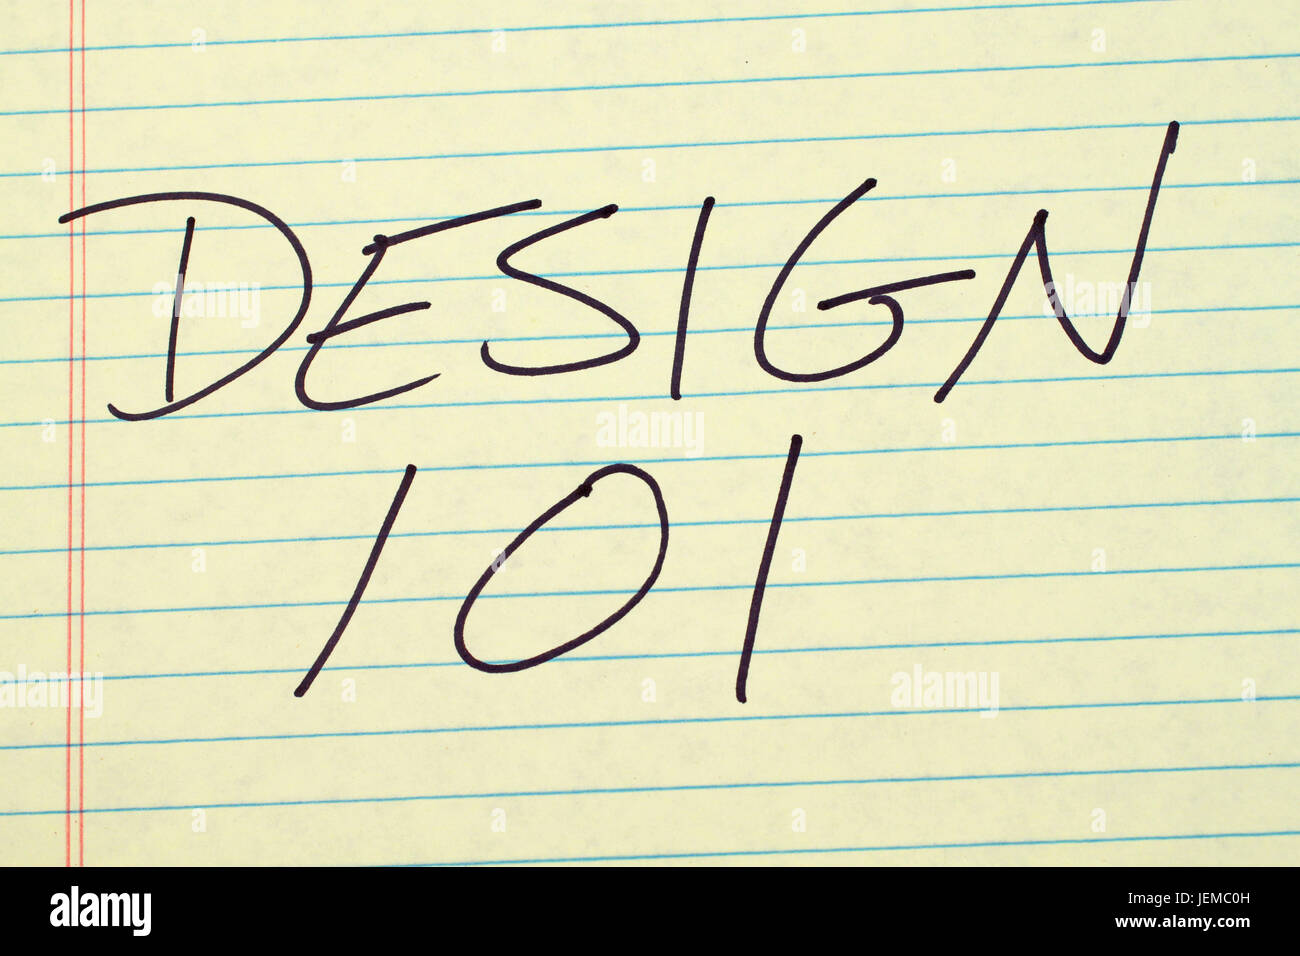 The words 'Design 101' on a yellow legal pad - Stock Image